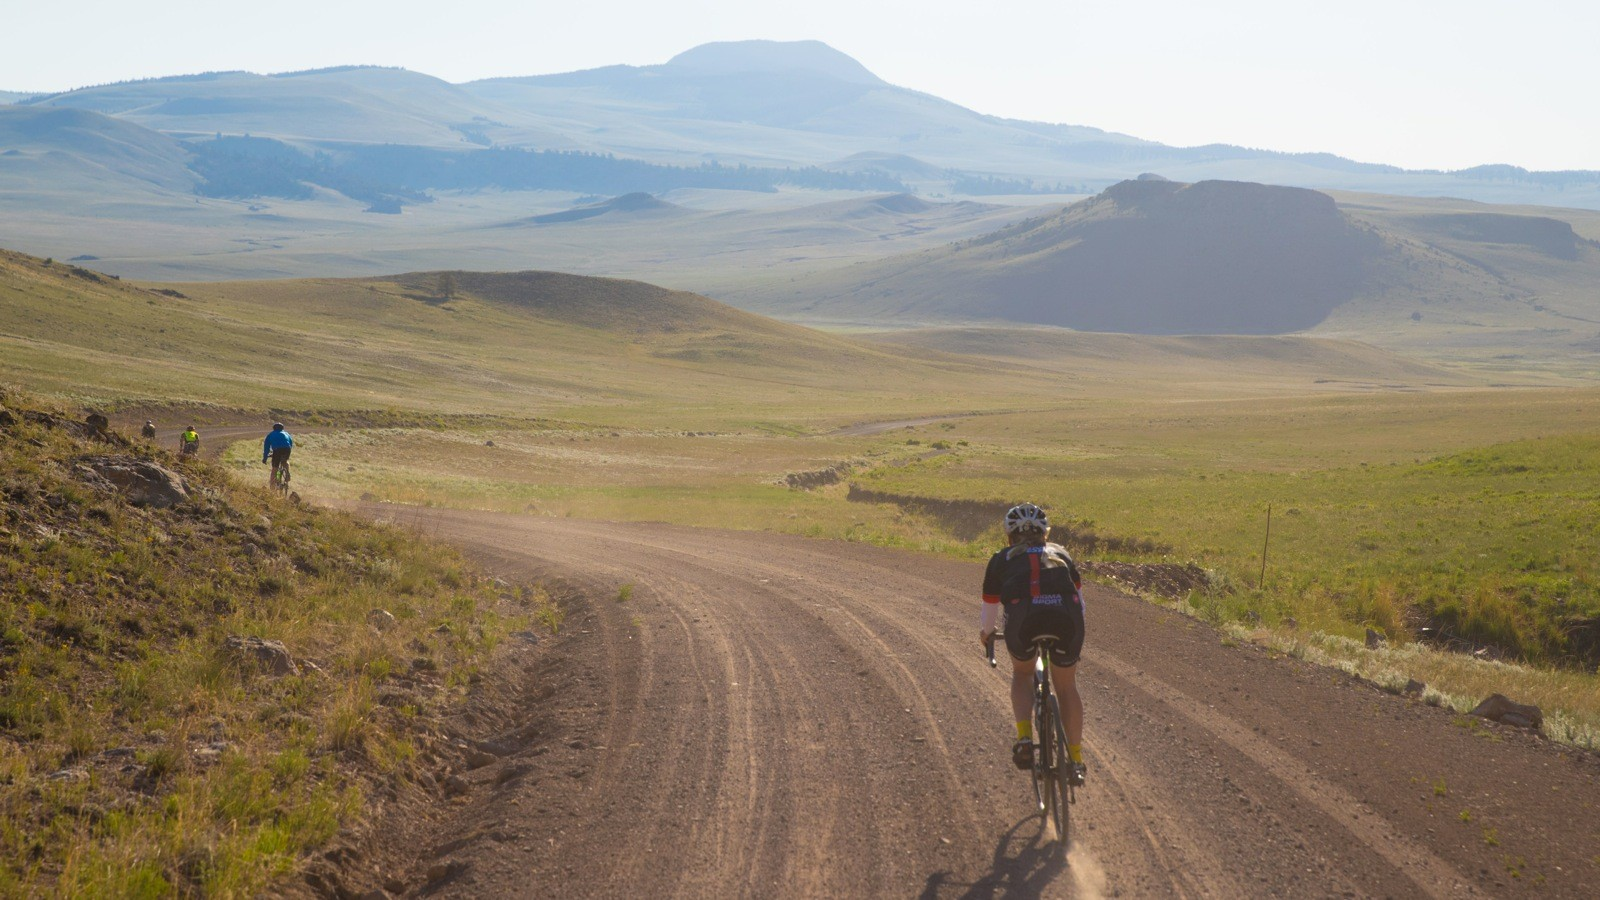 If you prefer to ride in thick auto traffic, don't come to the high dirt roads of the Rockies